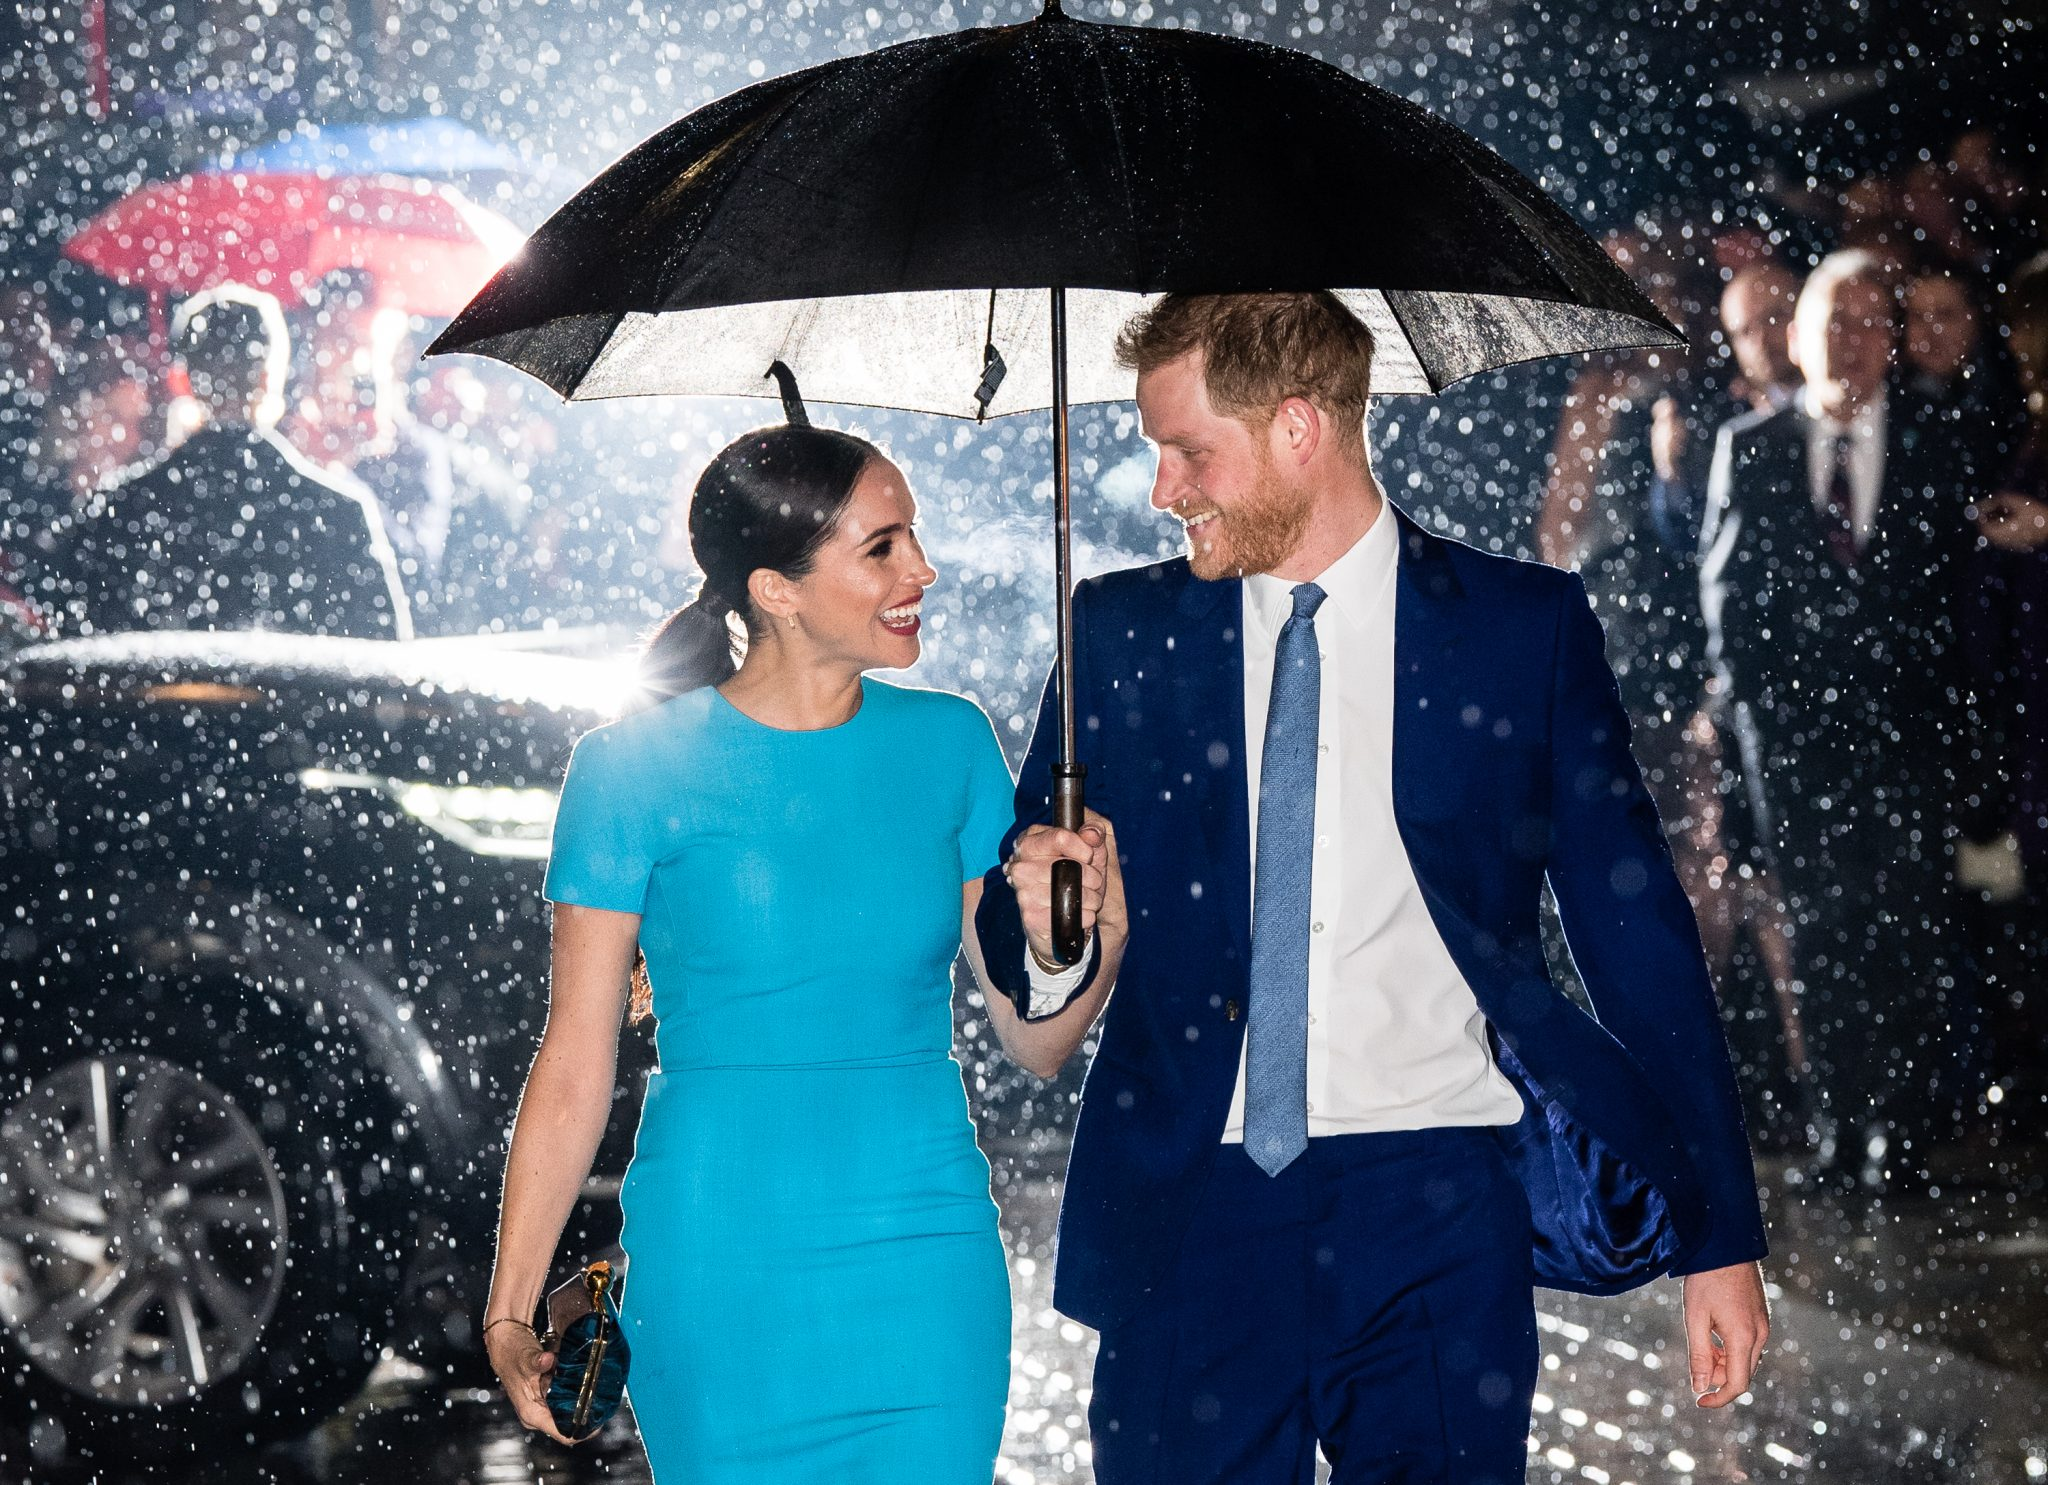 Harry and Meghan under an umbrella in the rain